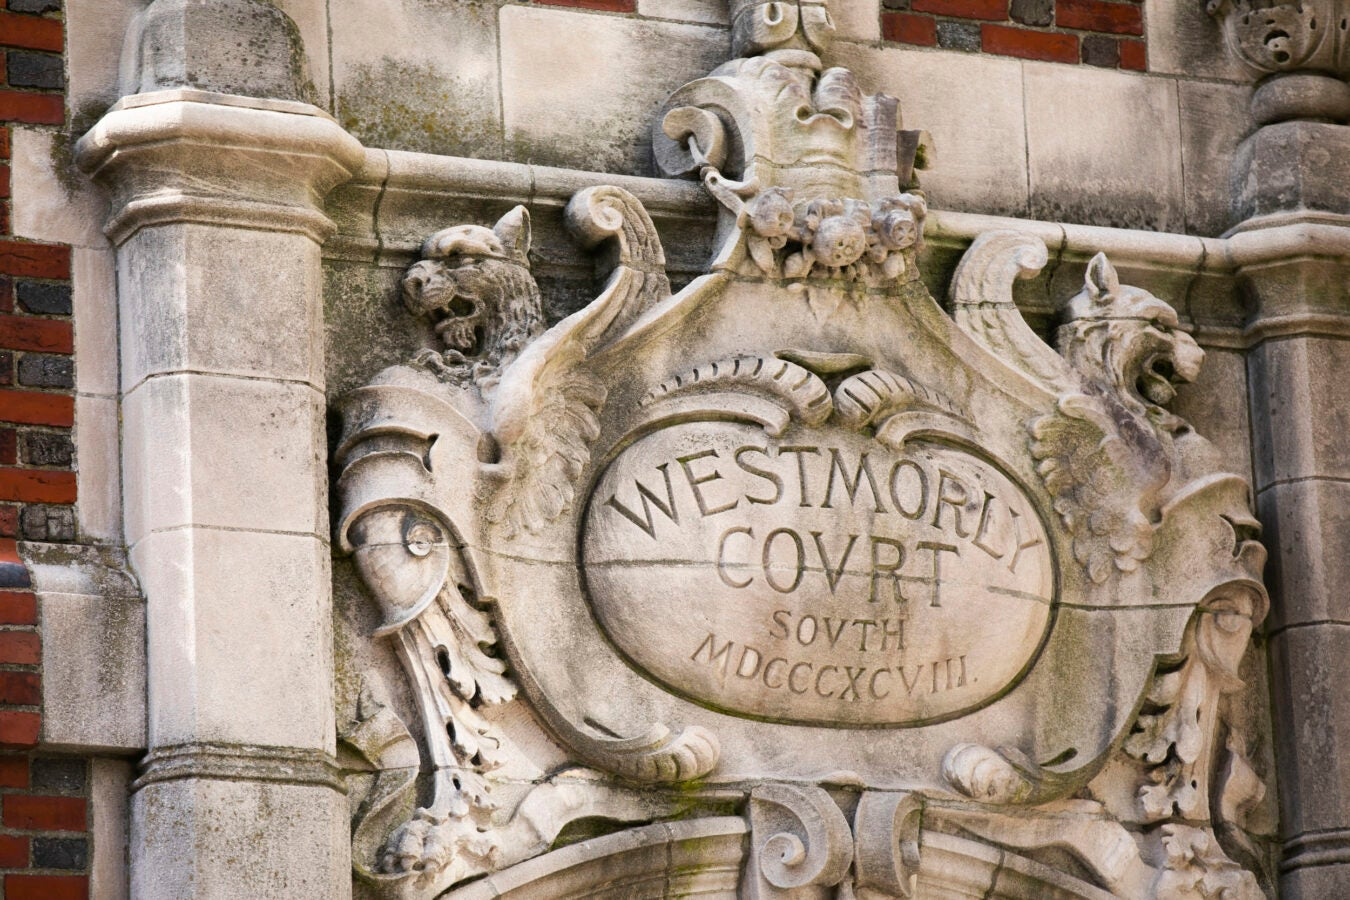 Griffins abound along the Bow Street entrance to Westmorly Court at Adams House.